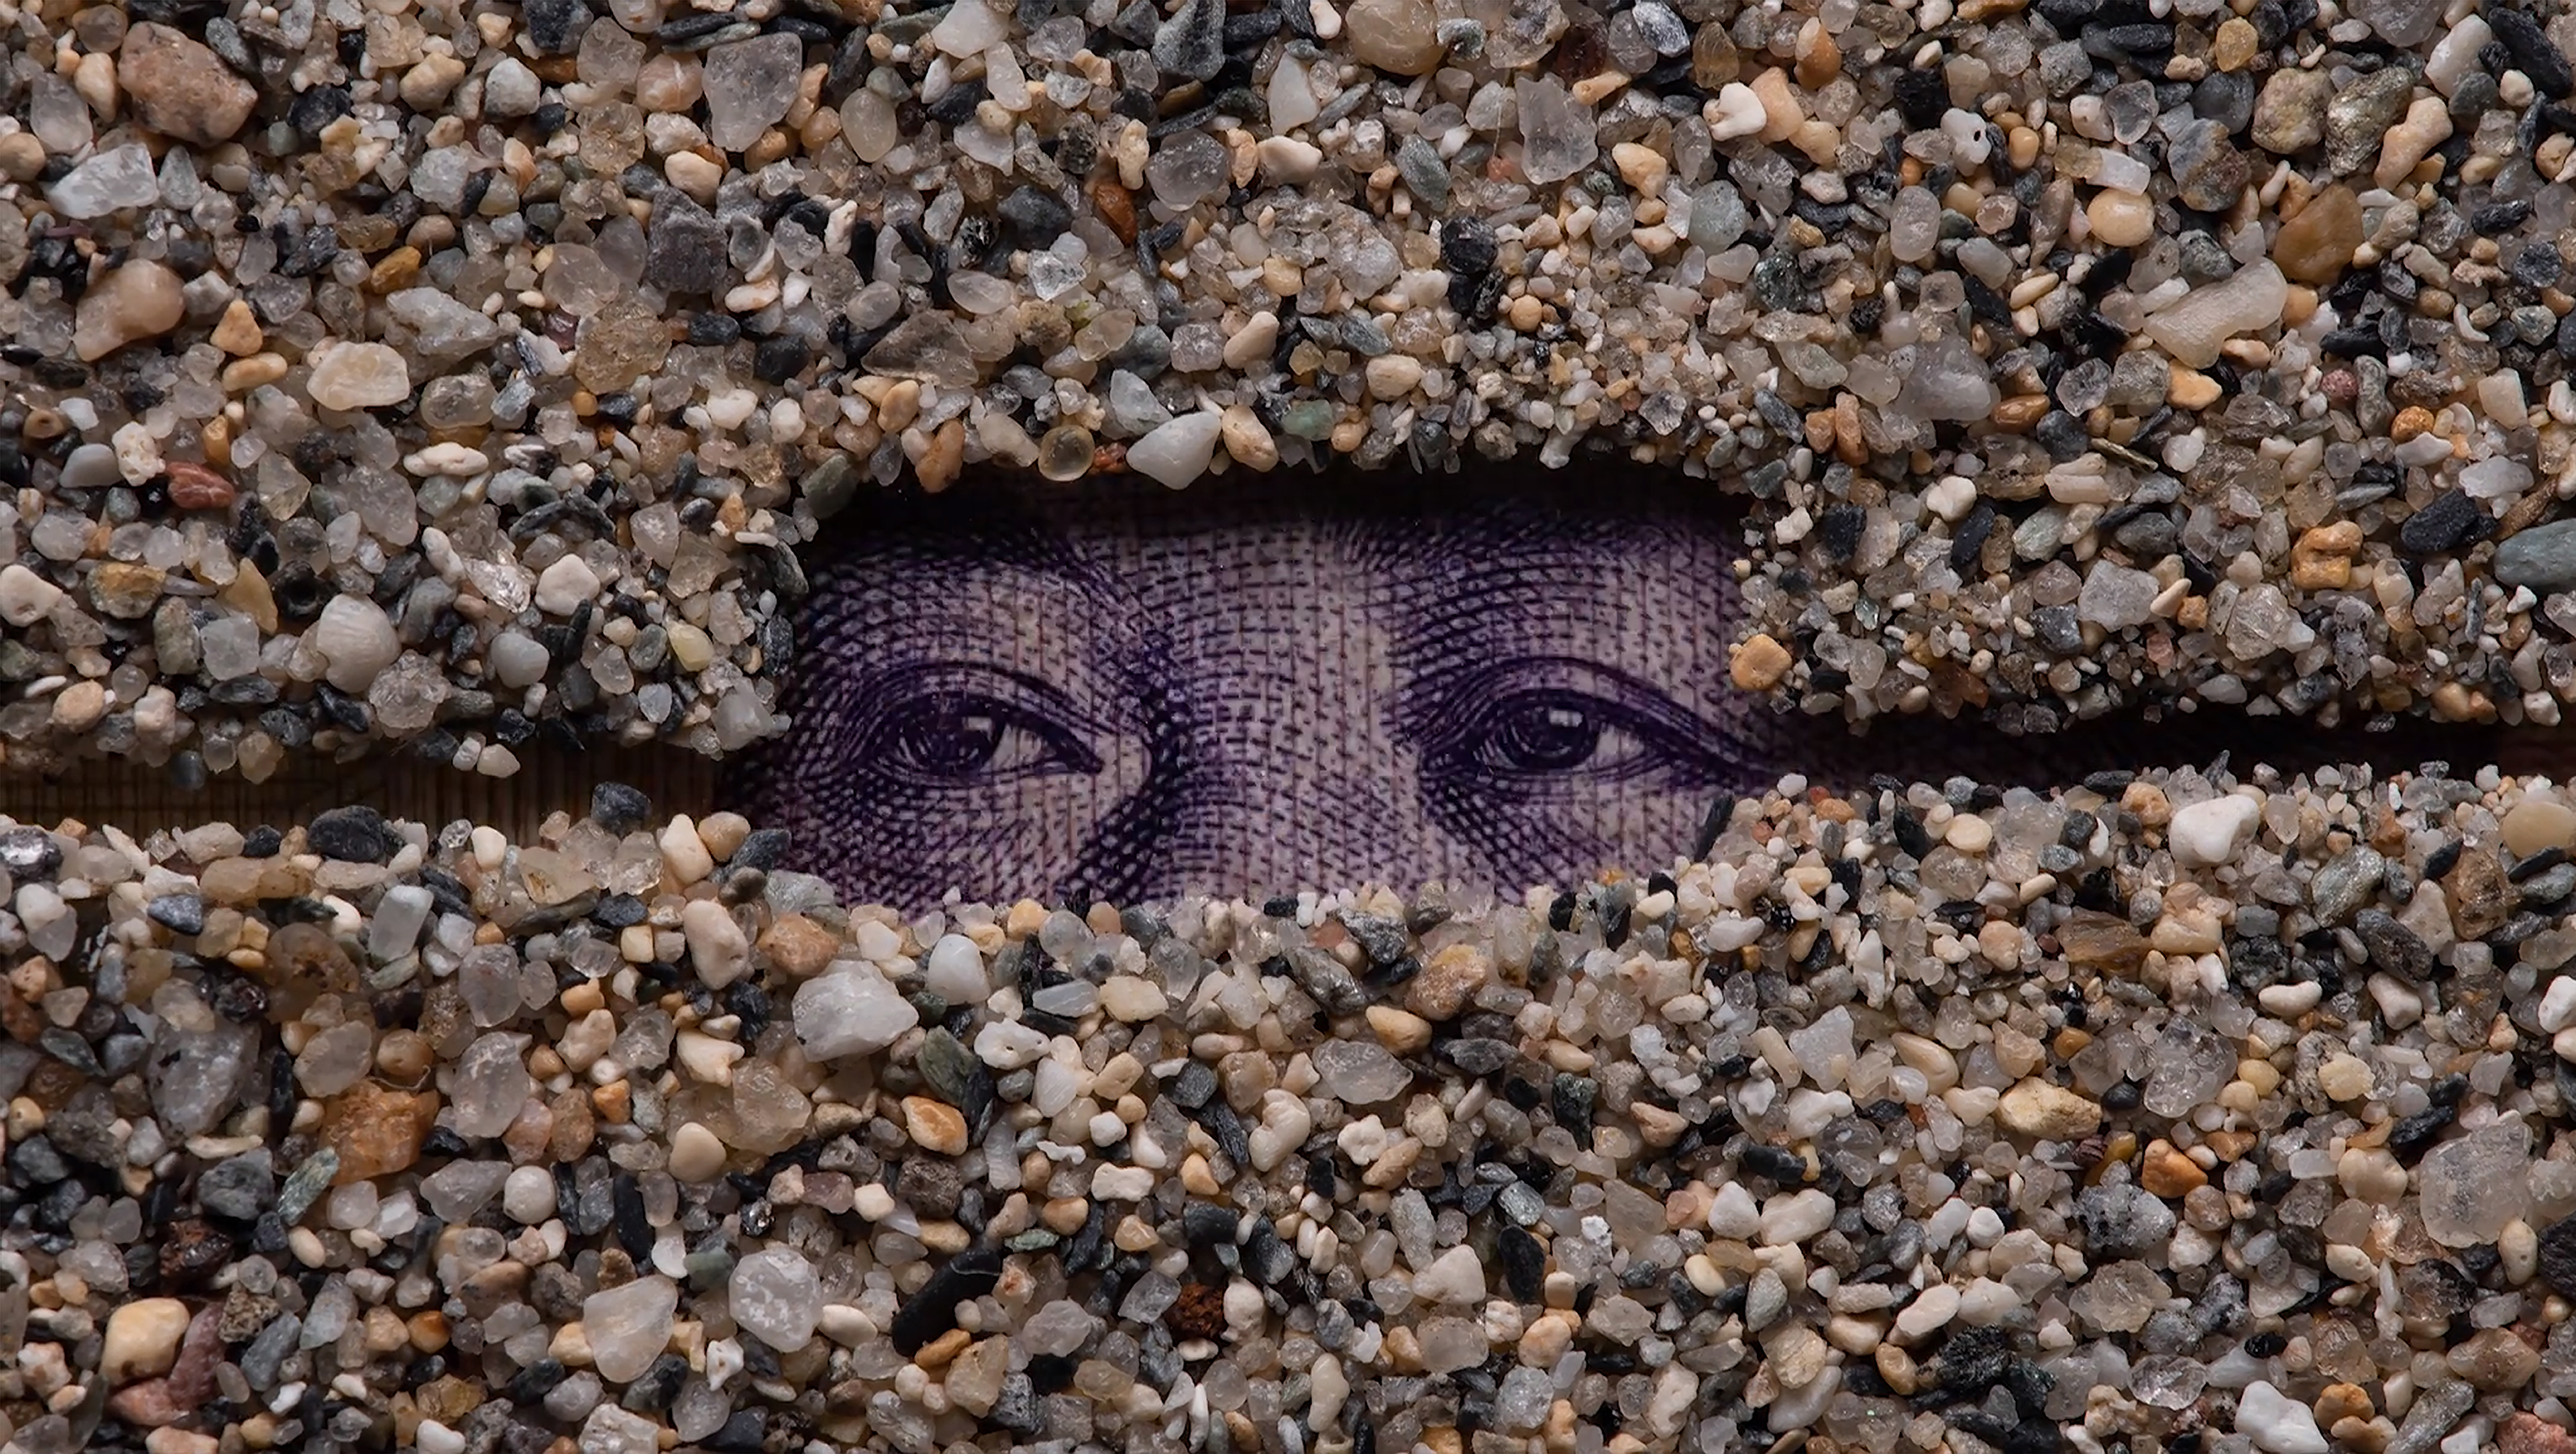 It takes 24 individual frames to fill up one second of film. Pictured: a still from Parks' Foreign Exchange, featuring multiple currencies and pieces of sand from around the world. Images courtesy of Corrie Francis Parks.